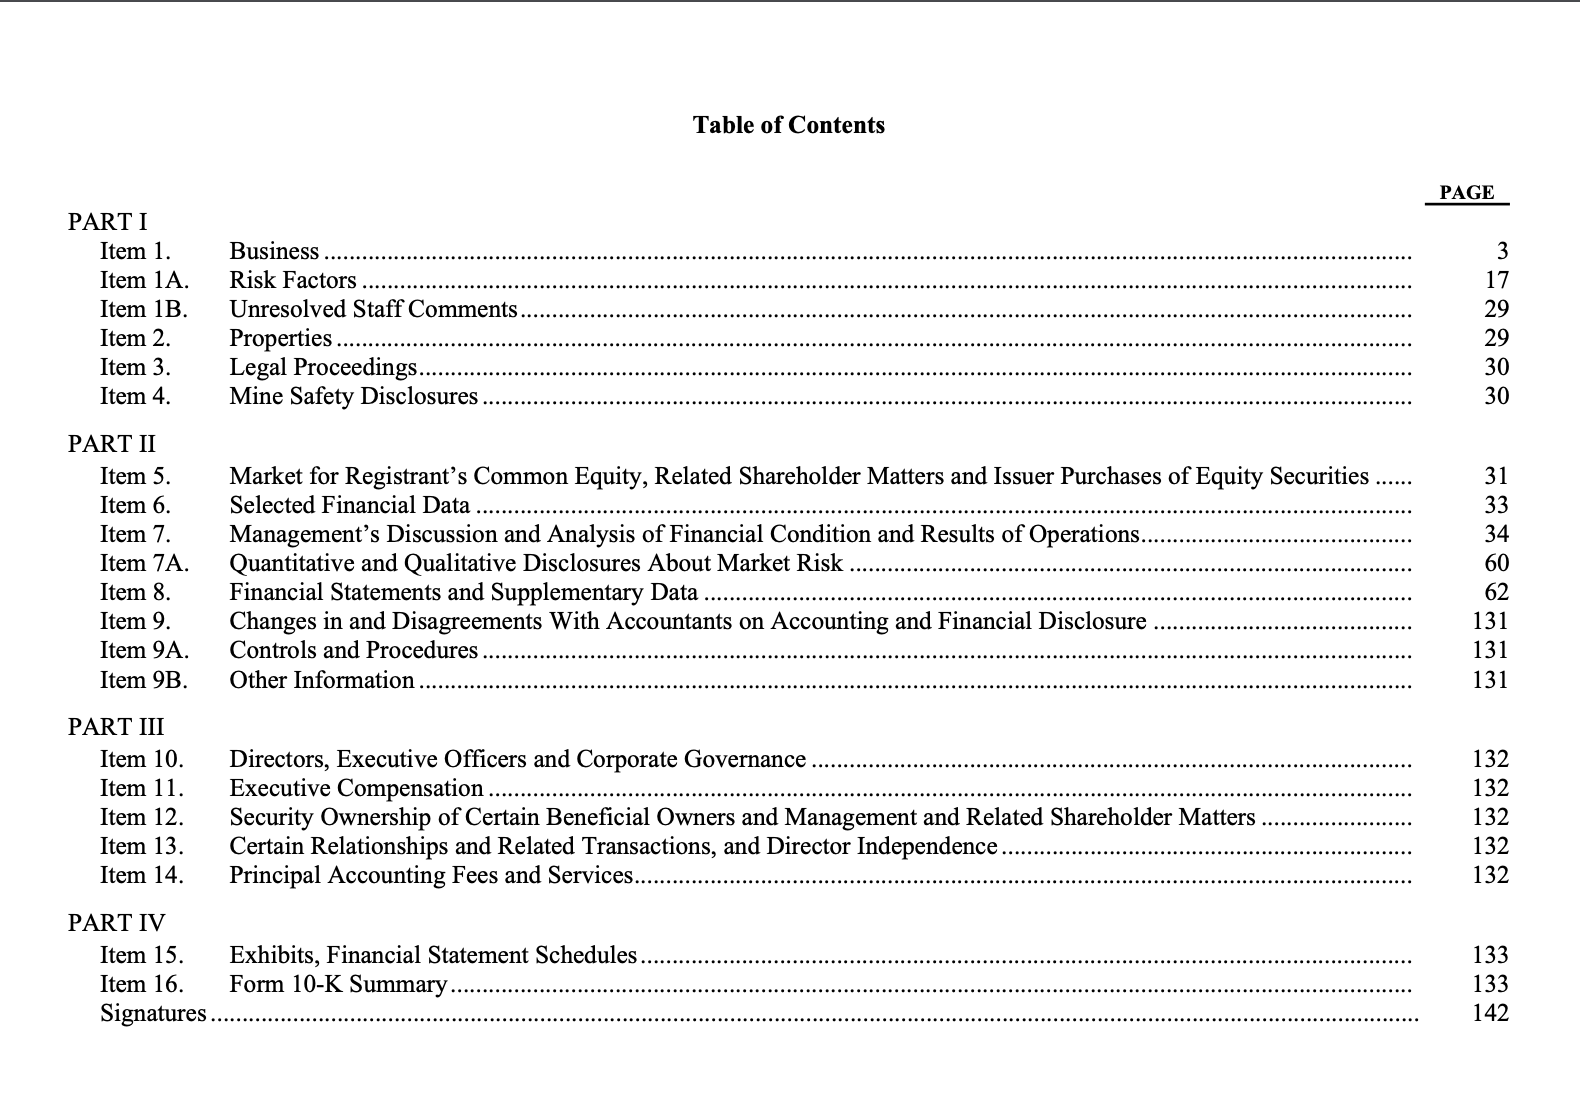 table of contents for the 2019 Neilsen Annual Report